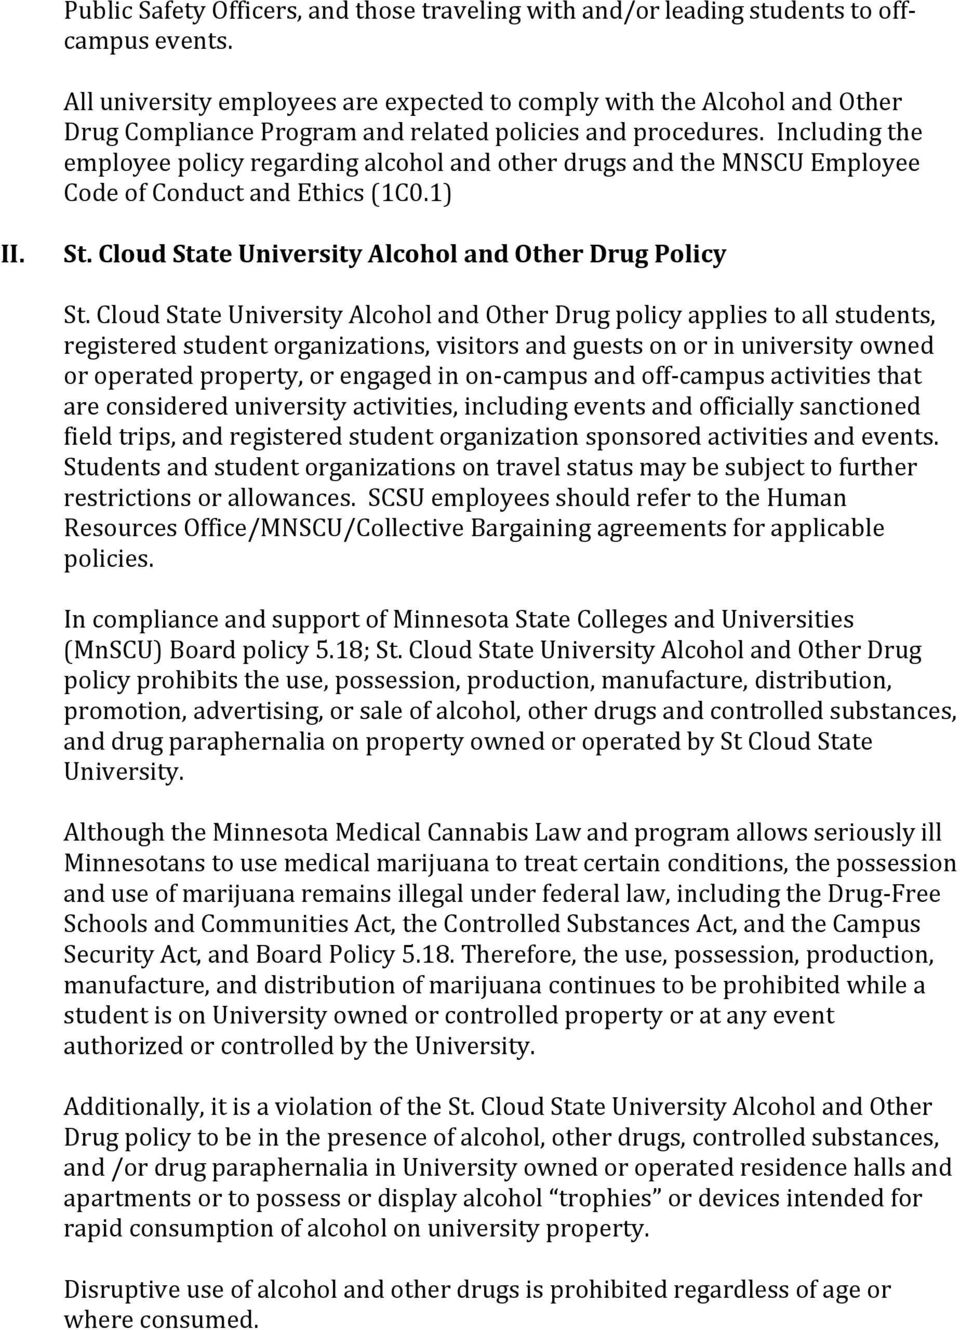 Including the employee policy regarding alcohol and other drugs and the MNSCU Employee Code of Conduct and Ethics (1C0.1) II. St. Cloud State University Alcohol and Other Drug Policy St.